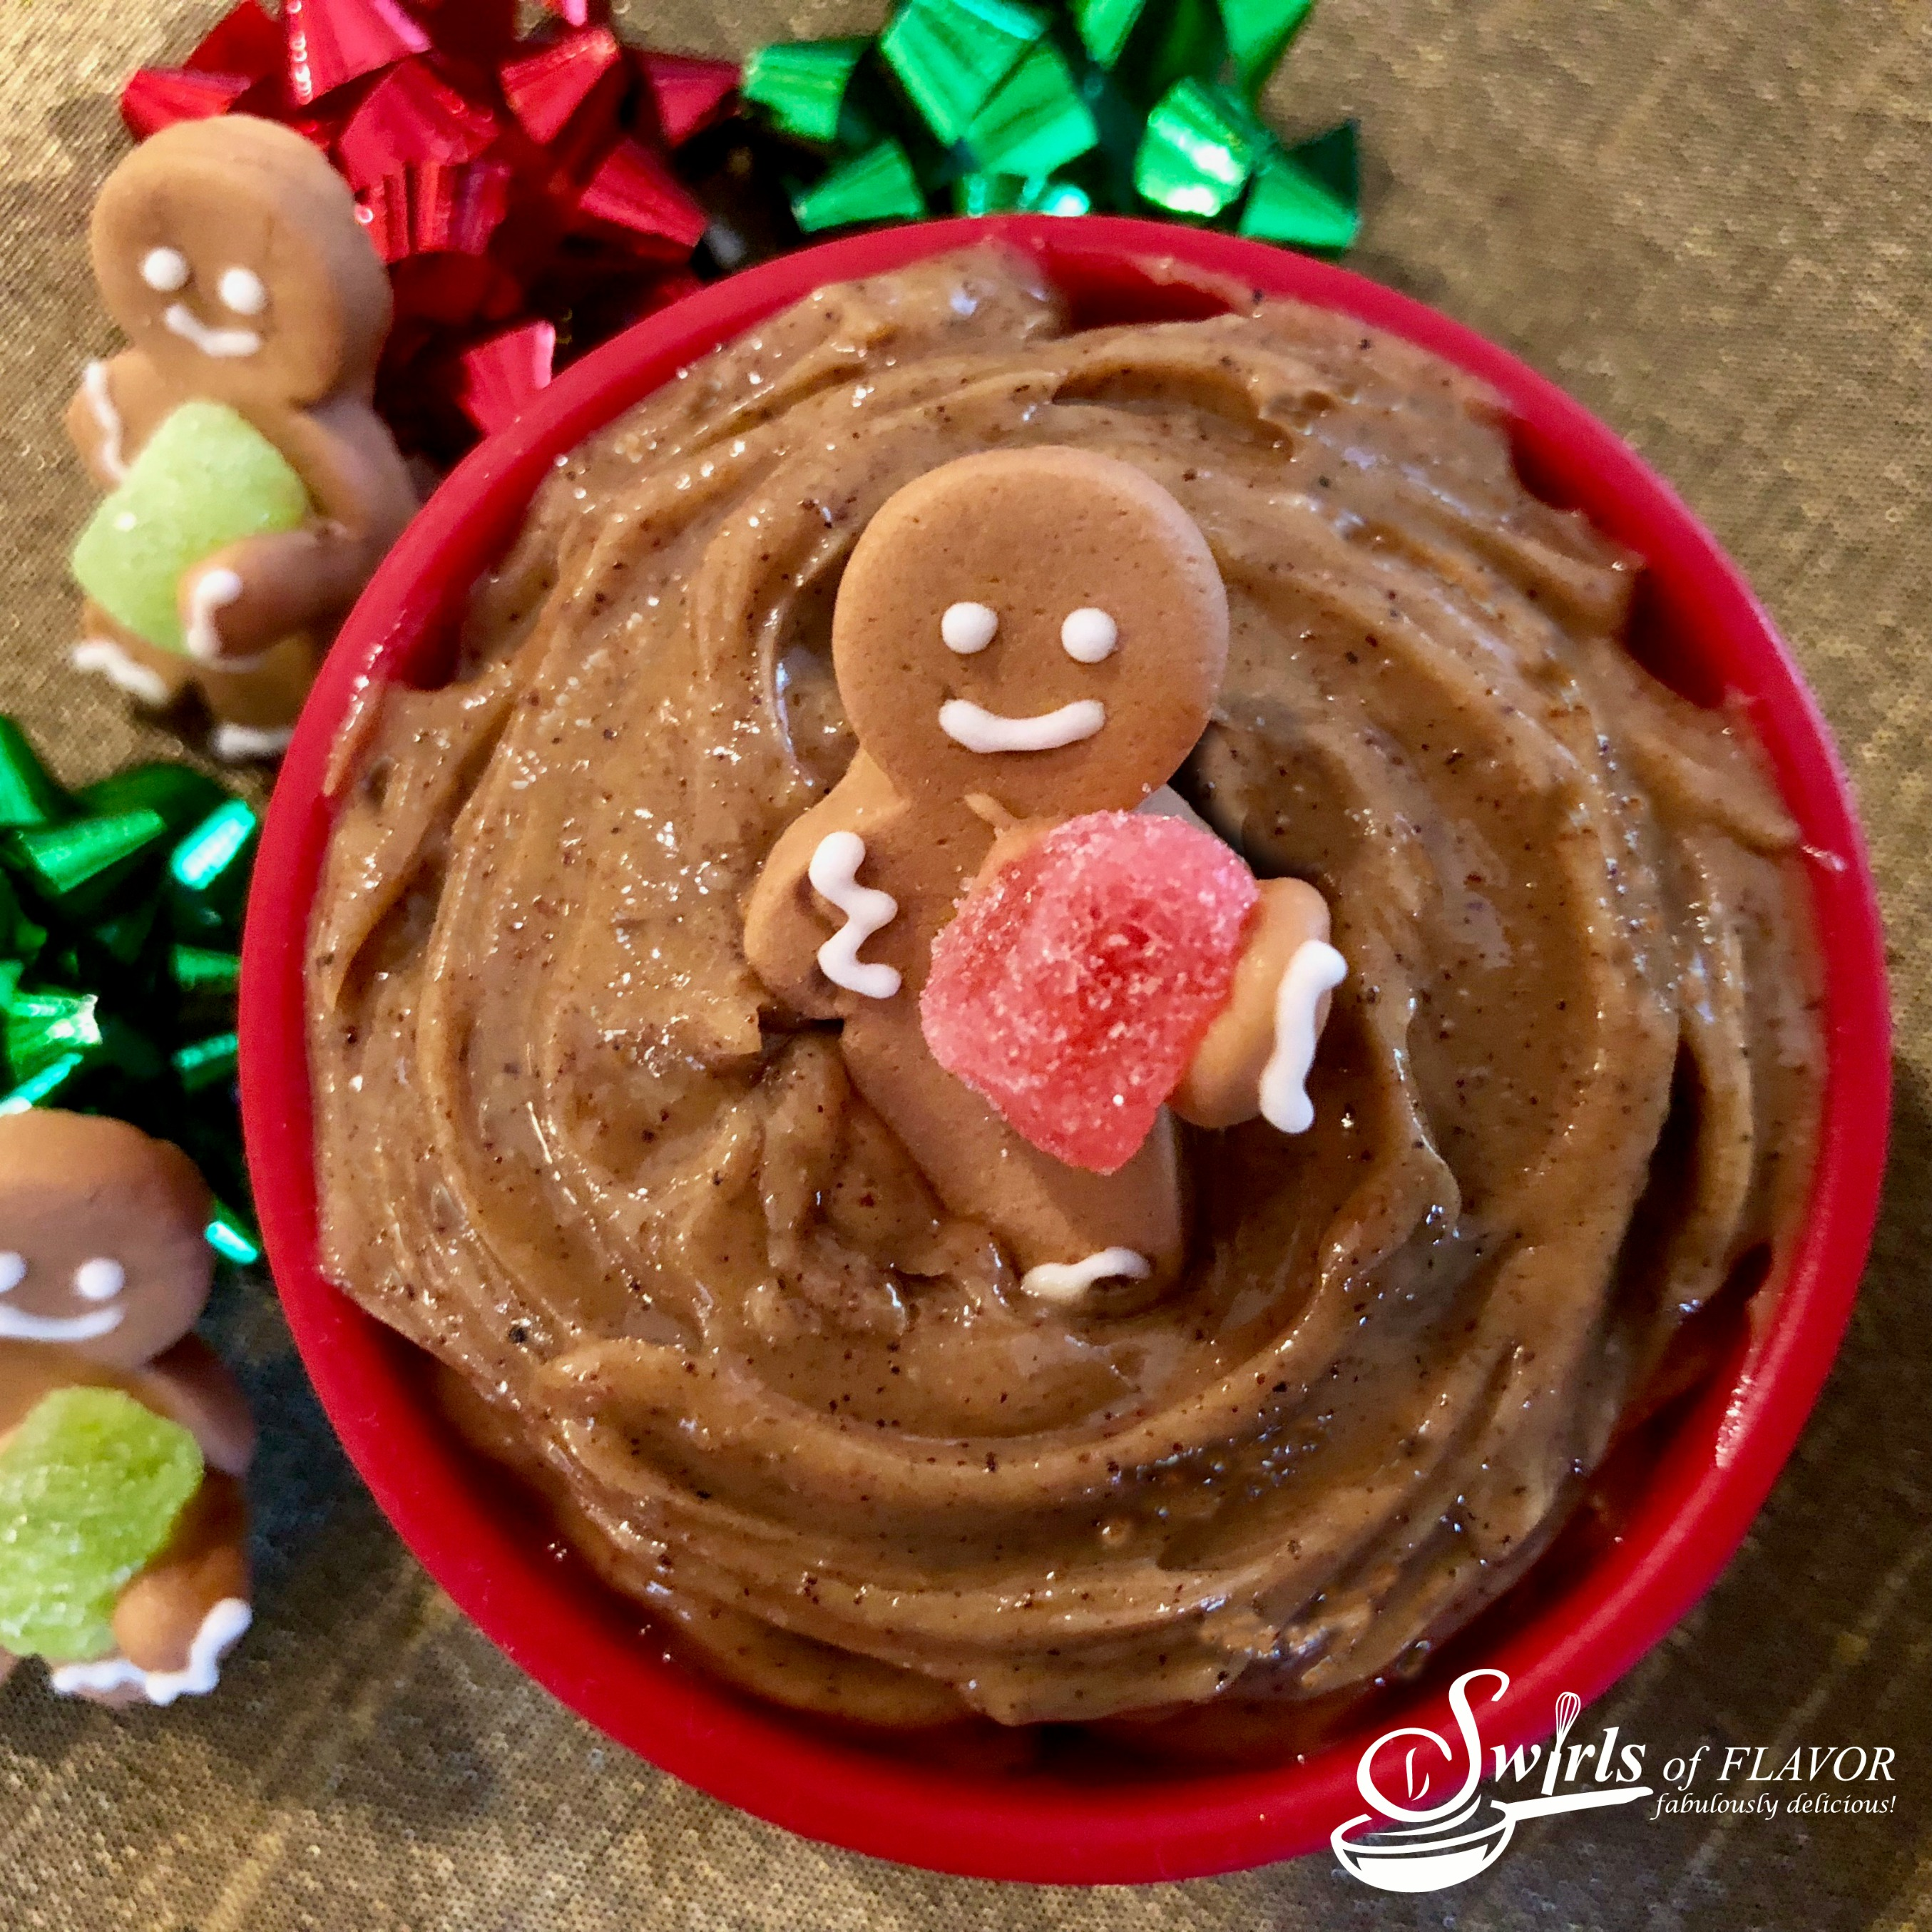 With just a few ingredients, Gingerbread Butter will make your waffles, pancakes and bagels taste truly seasonal and gourmet on Christmas morning! gingerbread | flavored butter | spices | Christmas | holiday | breakfast | brunch